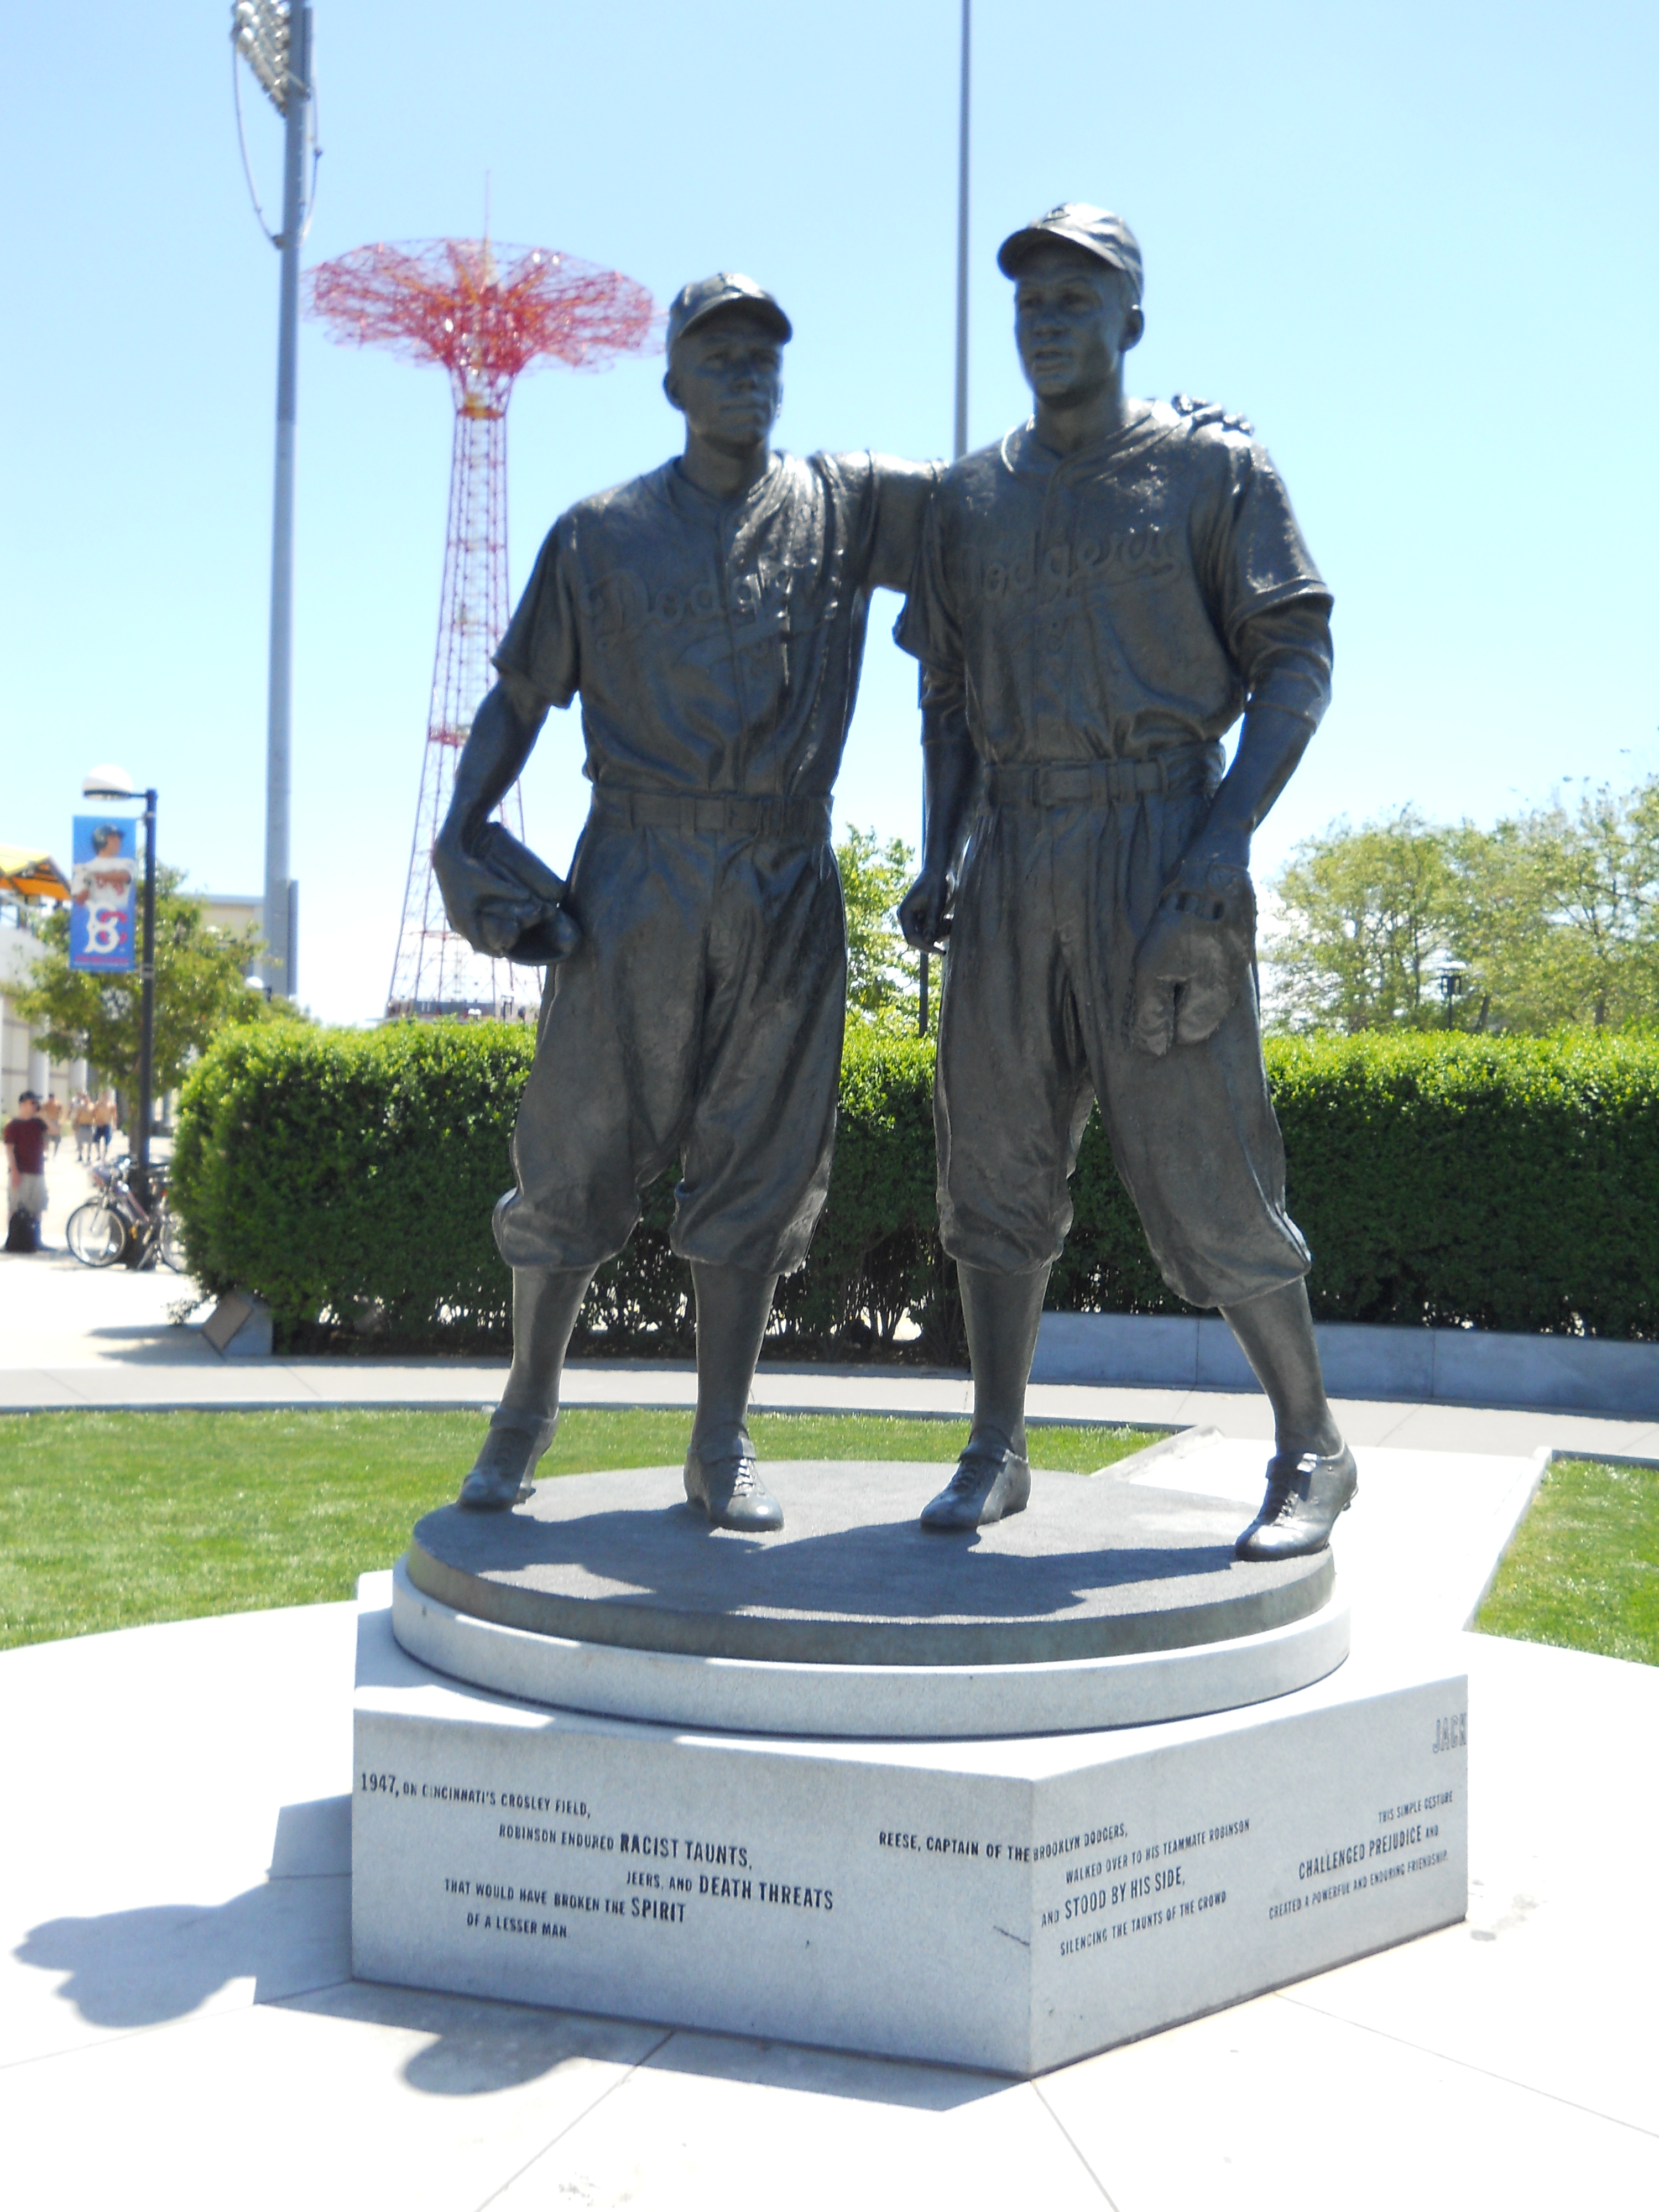 The statue of Jackie Robinson and Pee Wee Reese outside of the Brooklyn Cyclones Stadium